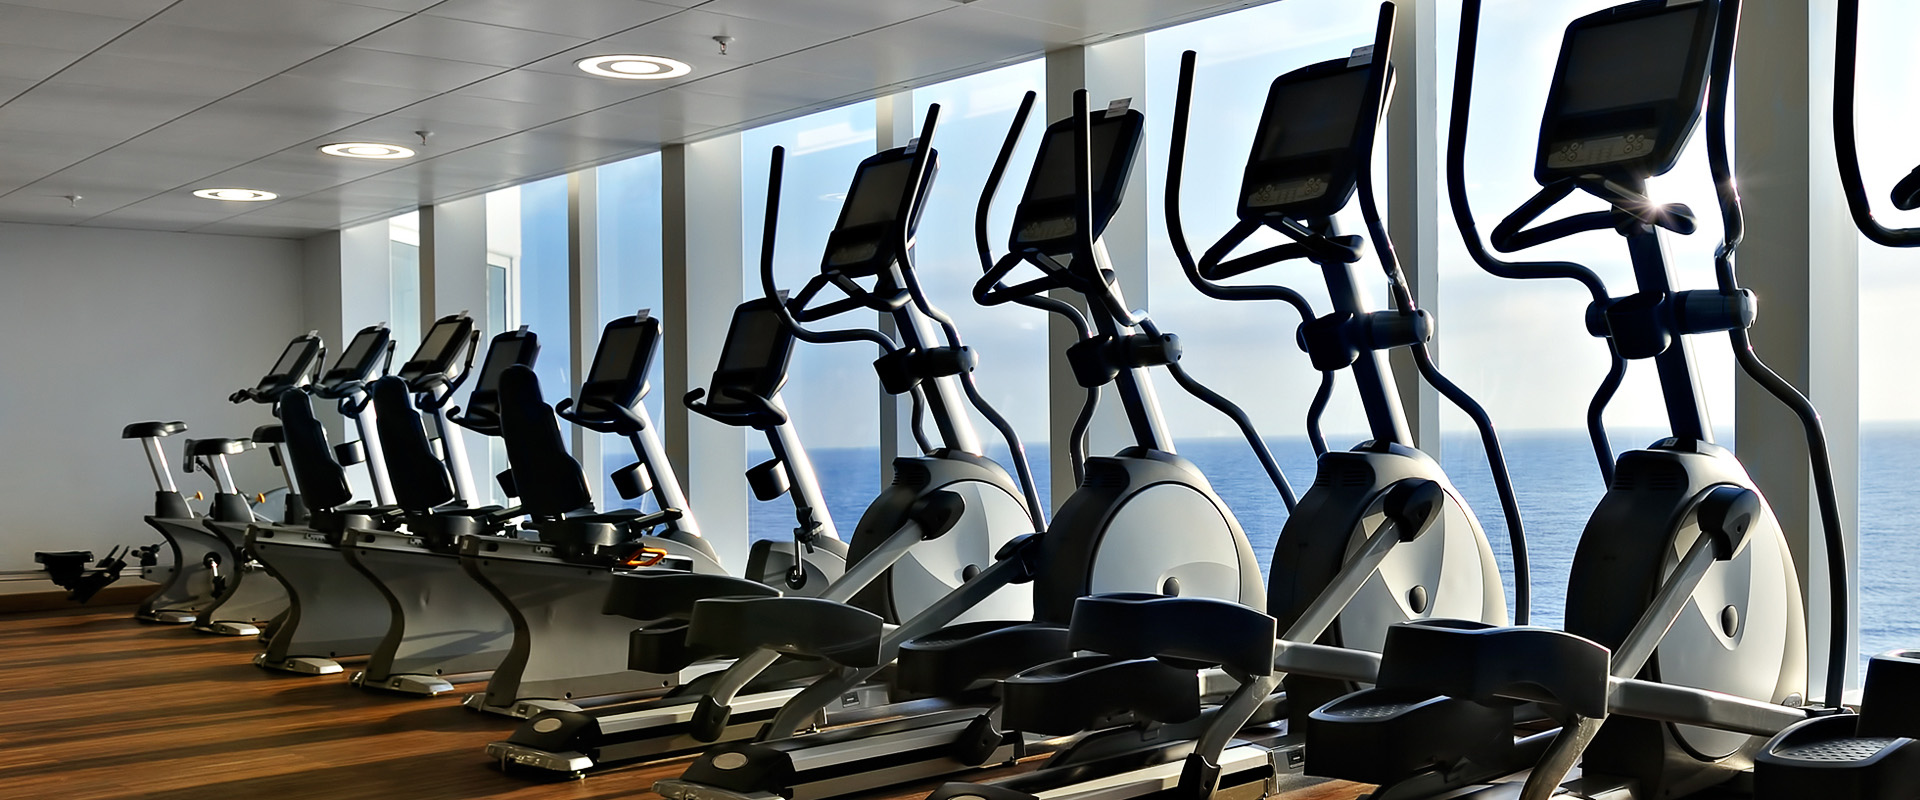 The Benefits of Working With a Top Personal Trainer London